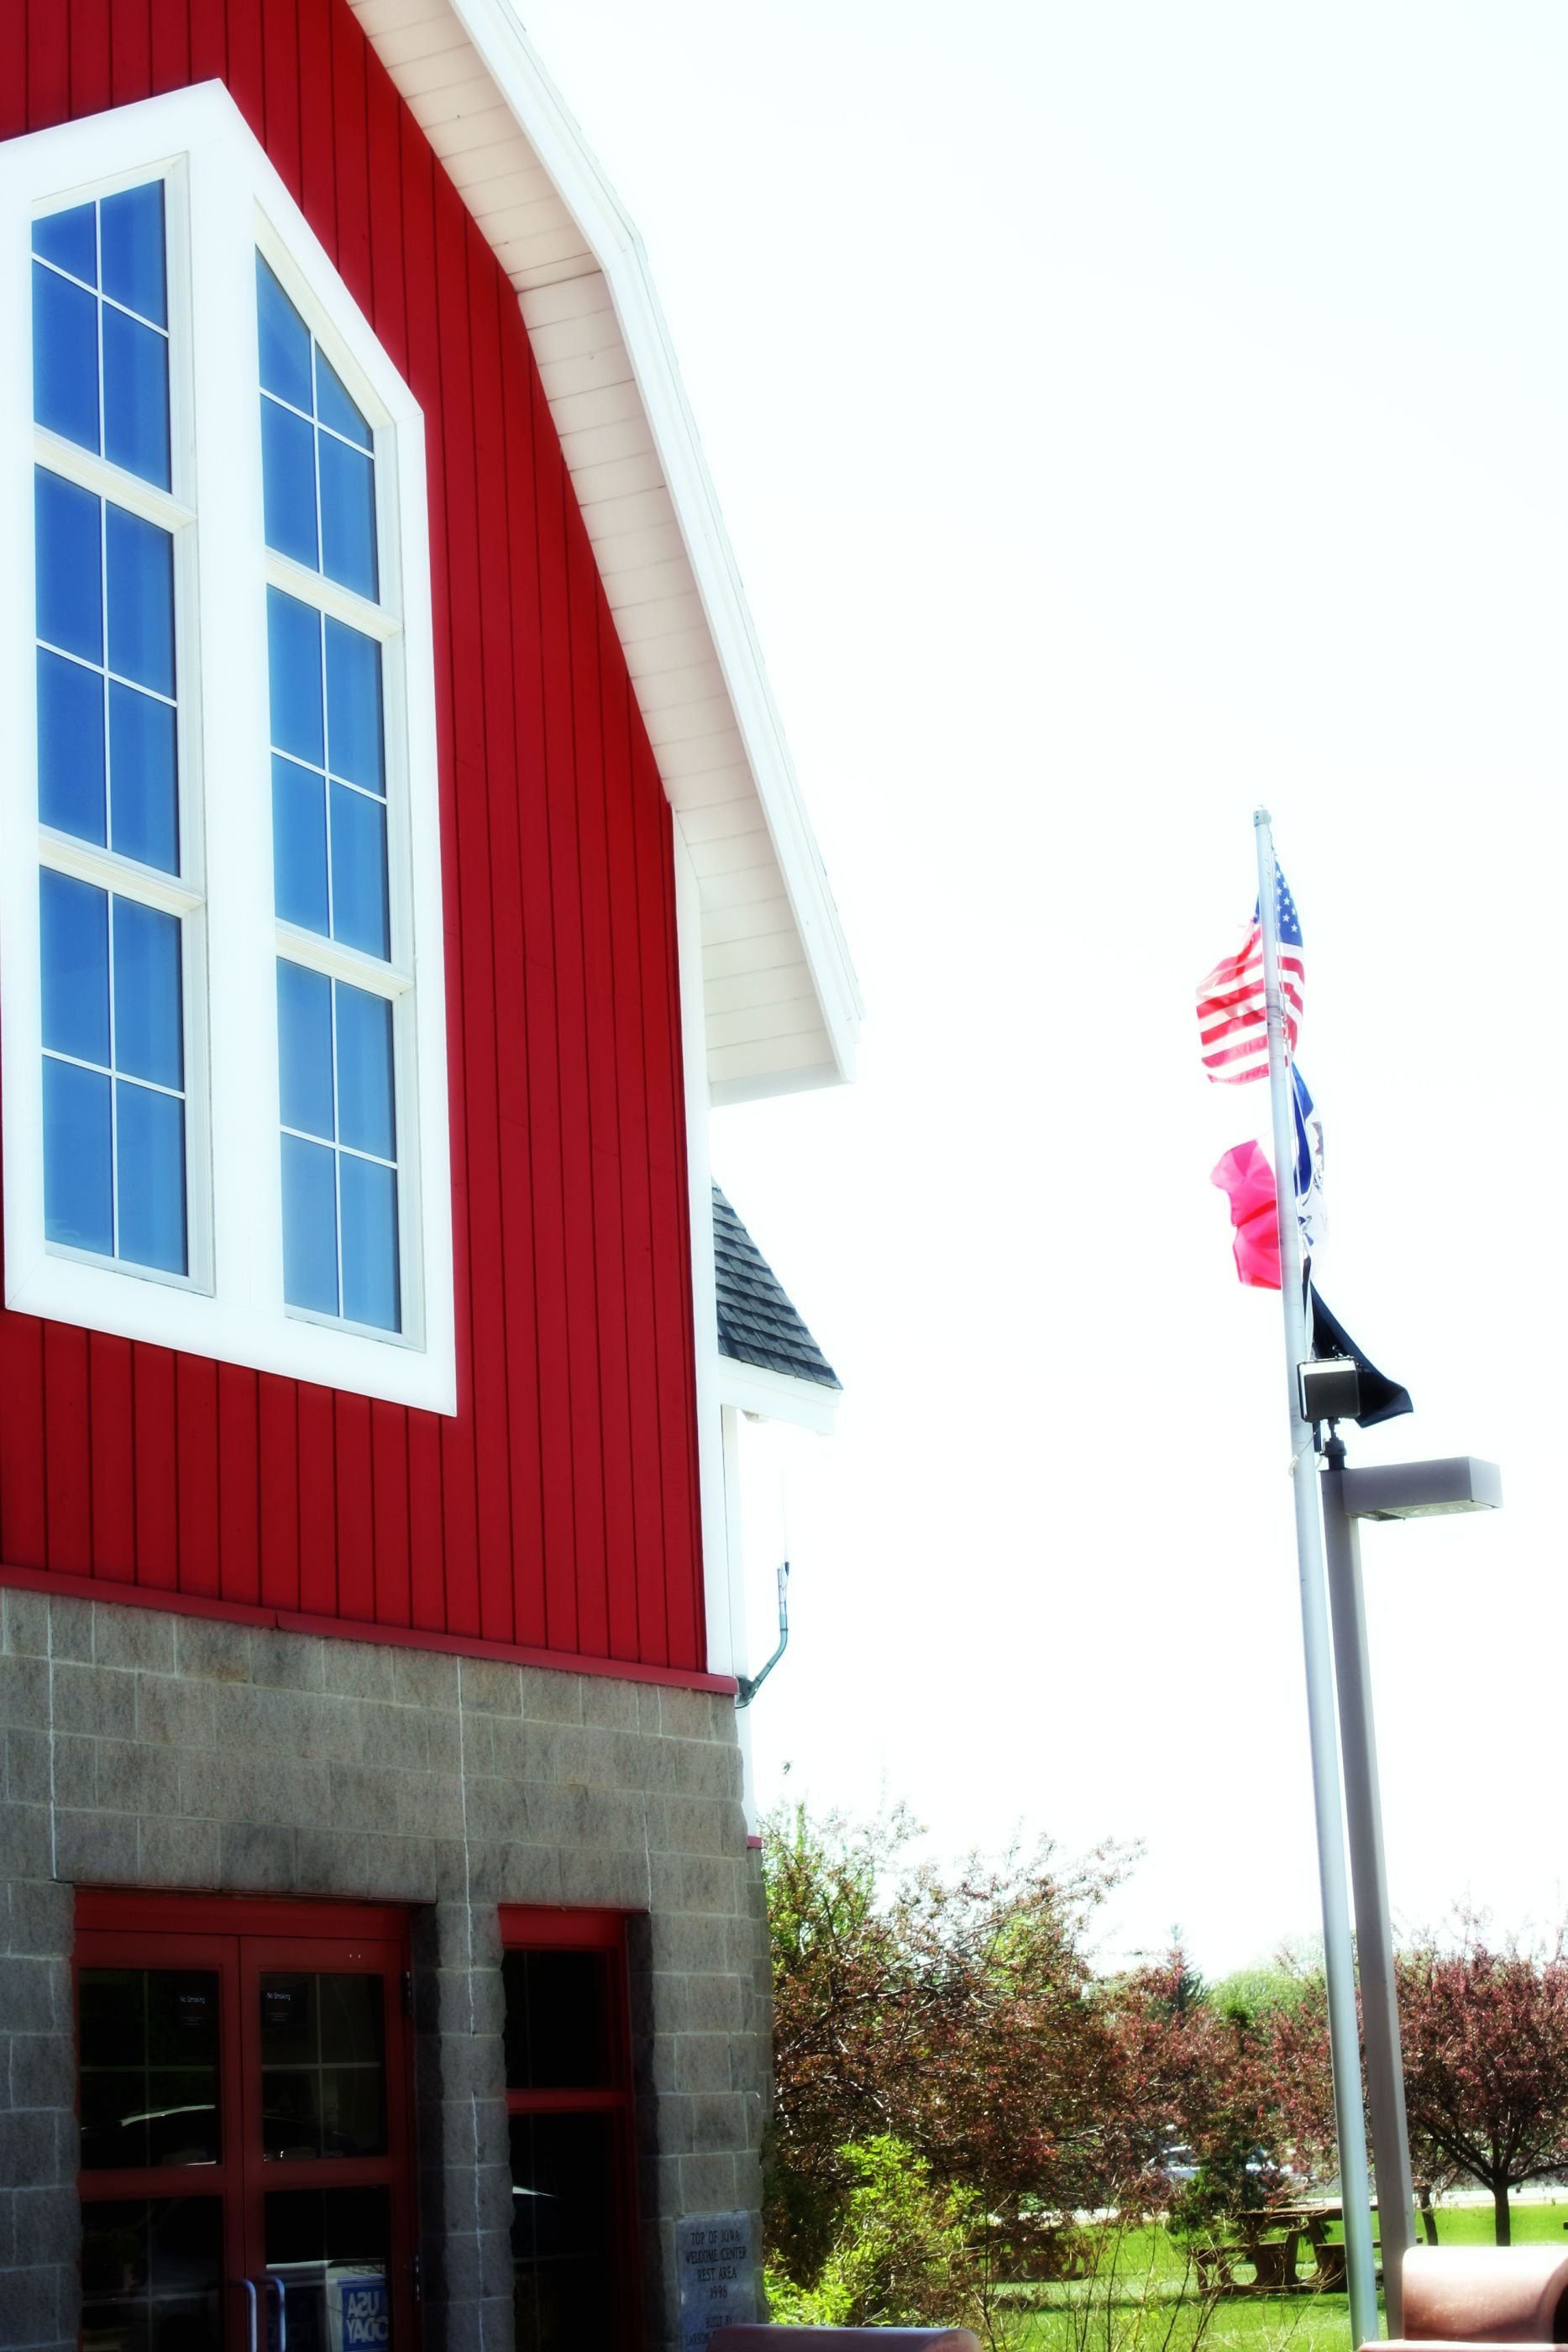 red barn with flagpole in iowa